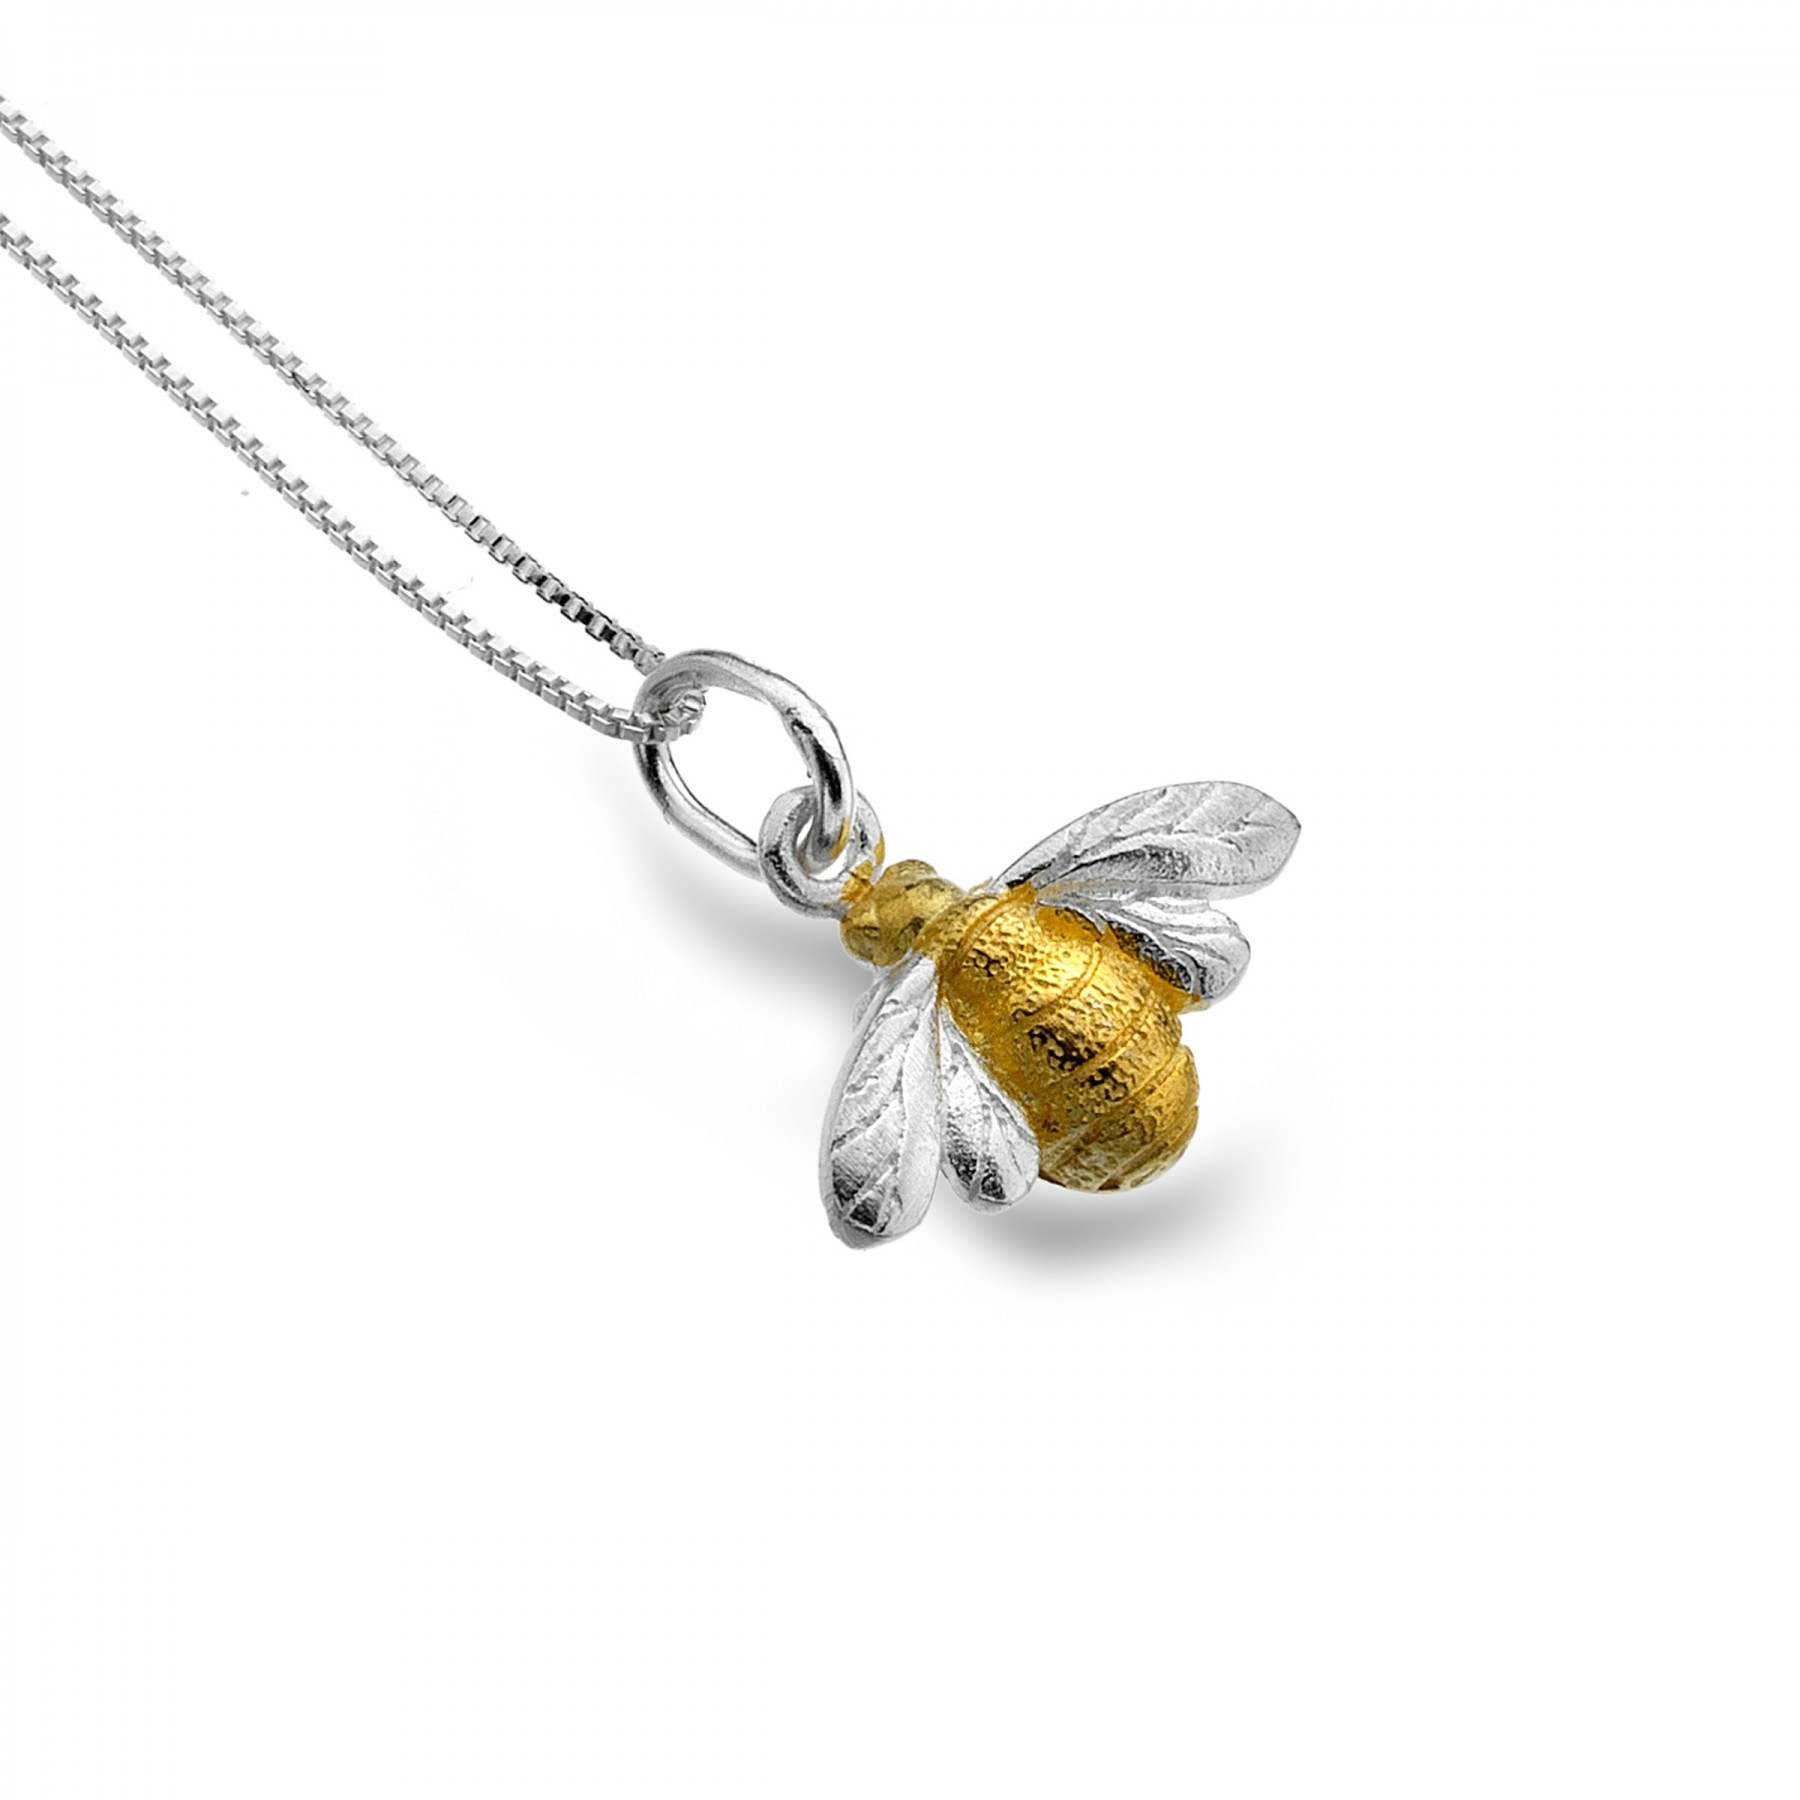 necklace silver buzzing honey charm queen chain from in jewelry on pendants sterling bee accessories item pendant bumblebee